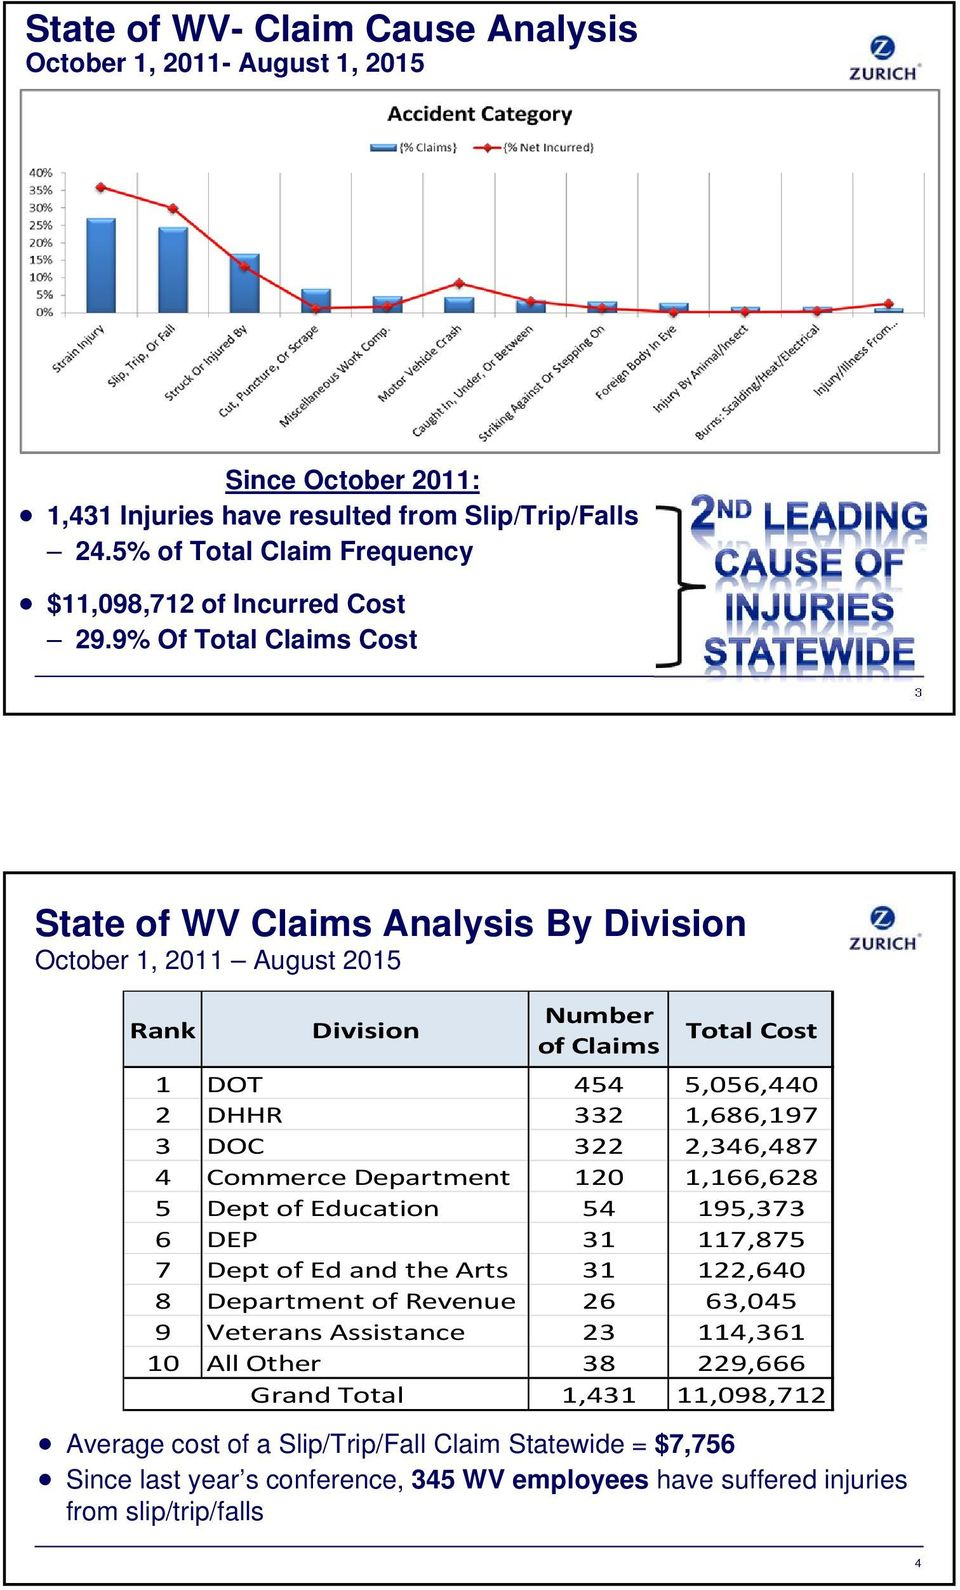 9% Of Total Claims Cost 3 State of WV Claims Analysis By Division October 1, 2011 August 2015 Rank Division Number of Claims Total Cost 1 DOT 454 5,056,440 2 DHHR 332 1,686,197 3 DOC 322 2,346,487